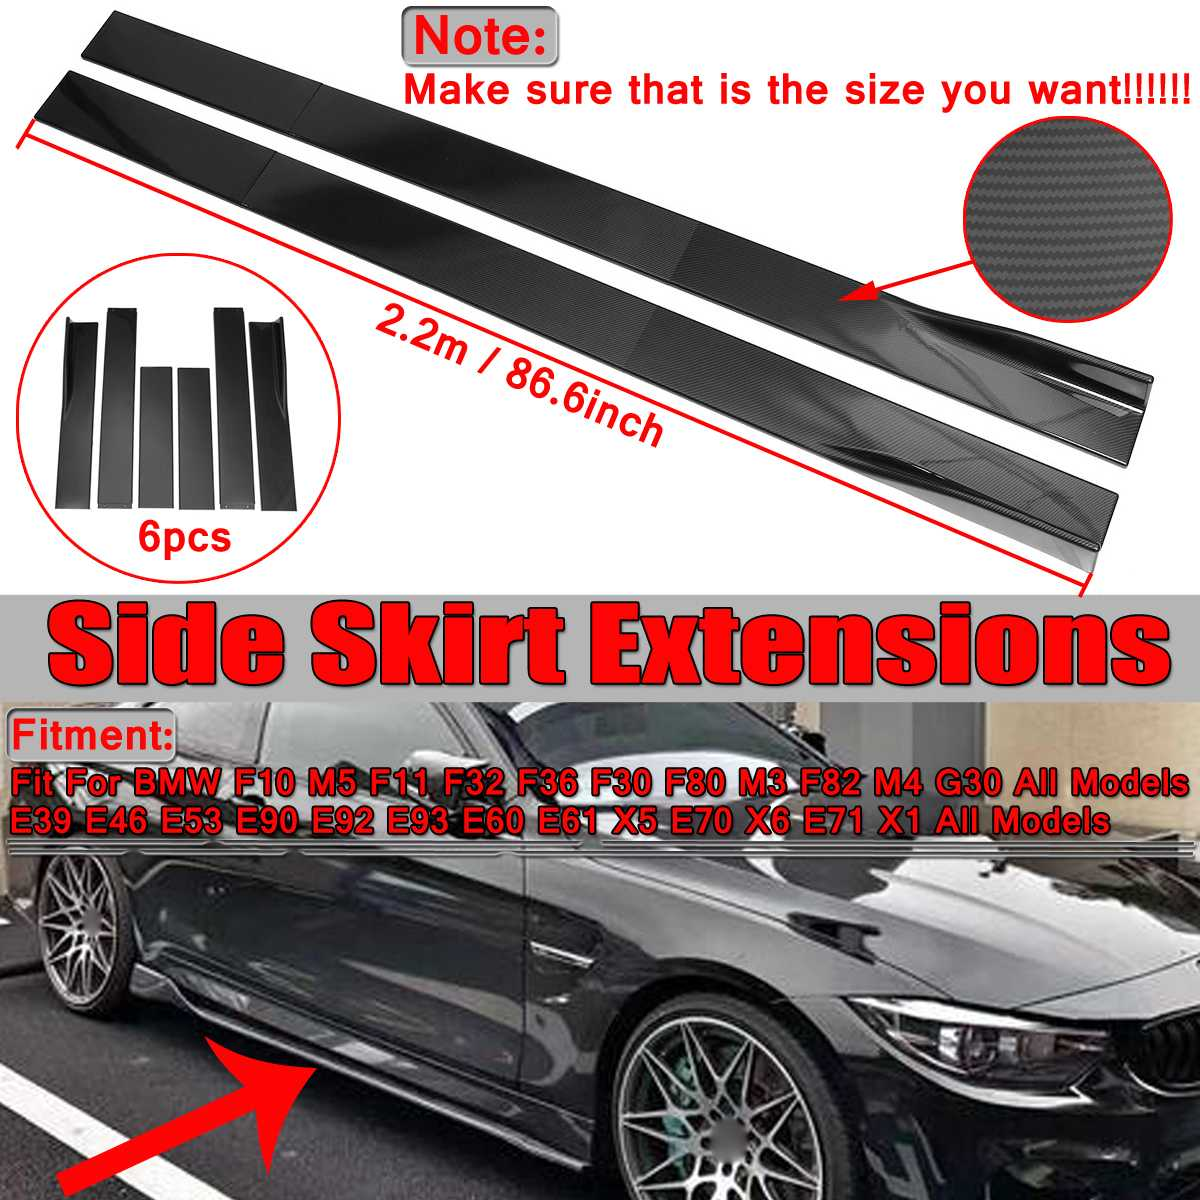 2.2m Carbon Fiber Look Universal Car Side Skirt Winglet Extensions Rocker Splitters For <font><b>BMW</b></font> F30 F80 F82 M4 F32 F36 E90 E92 <font><b>F10</b></font> image